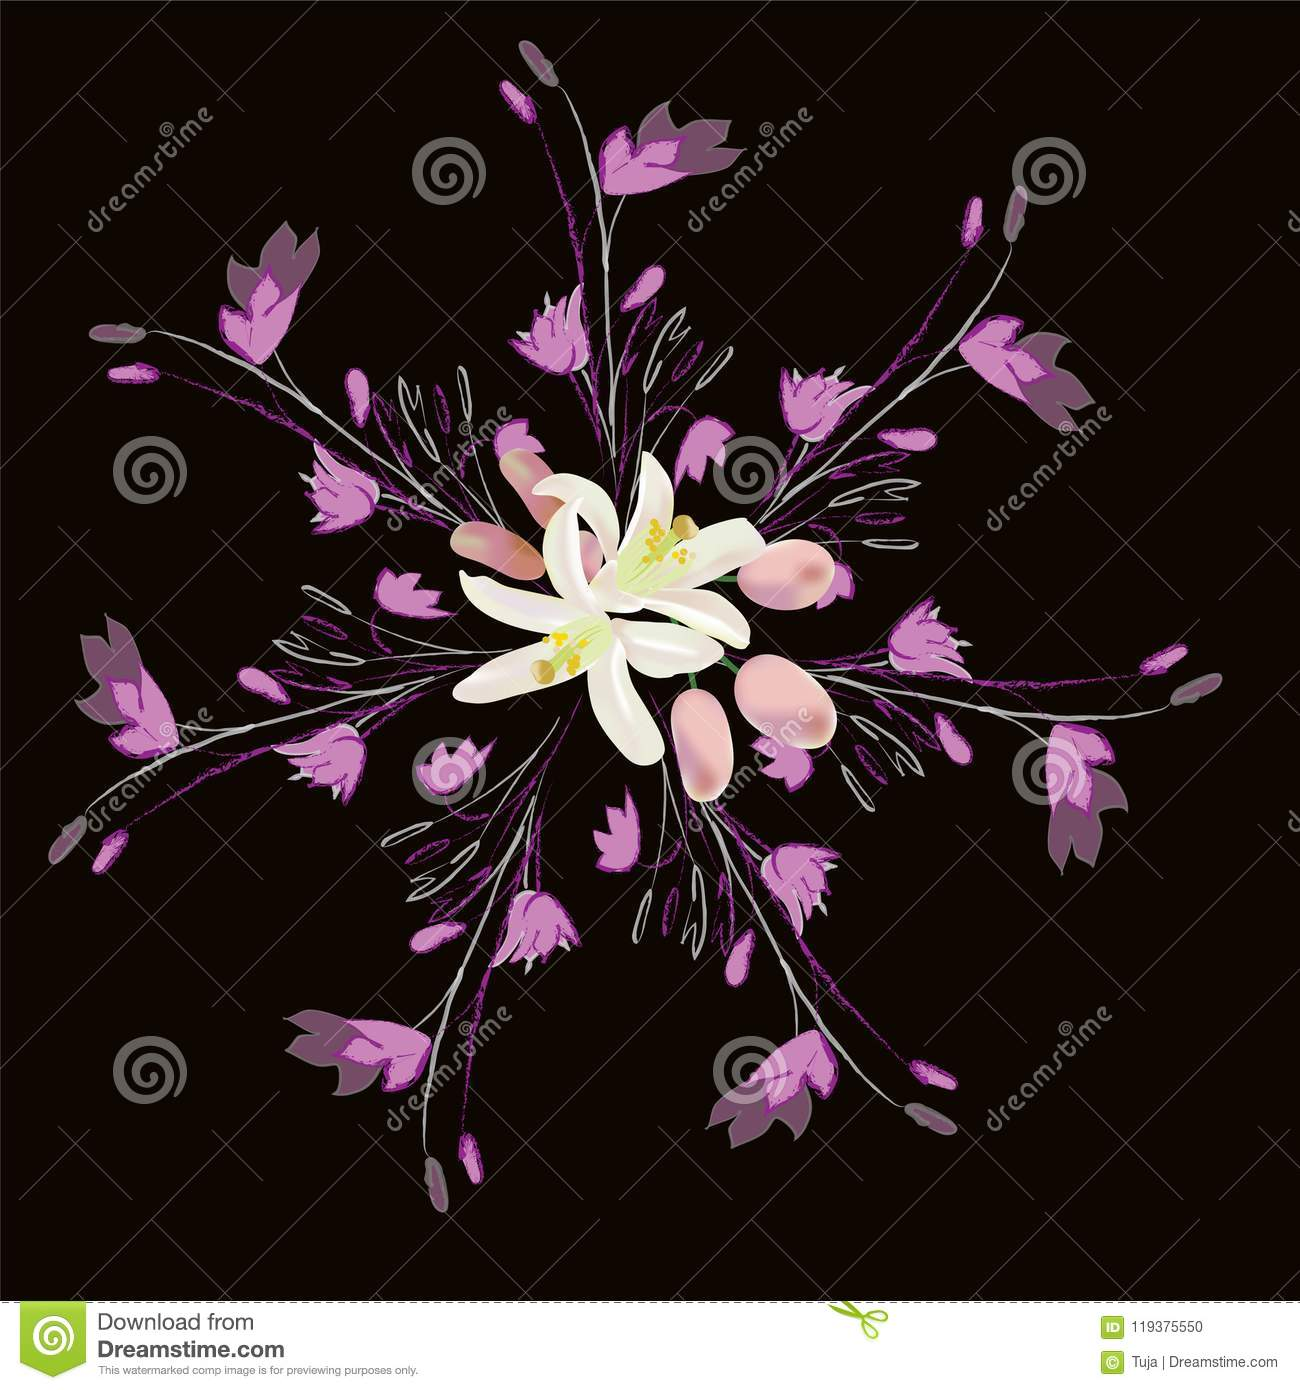 Seamless Pattern With Bouquet Of Abstract Lilies Flowers On Black